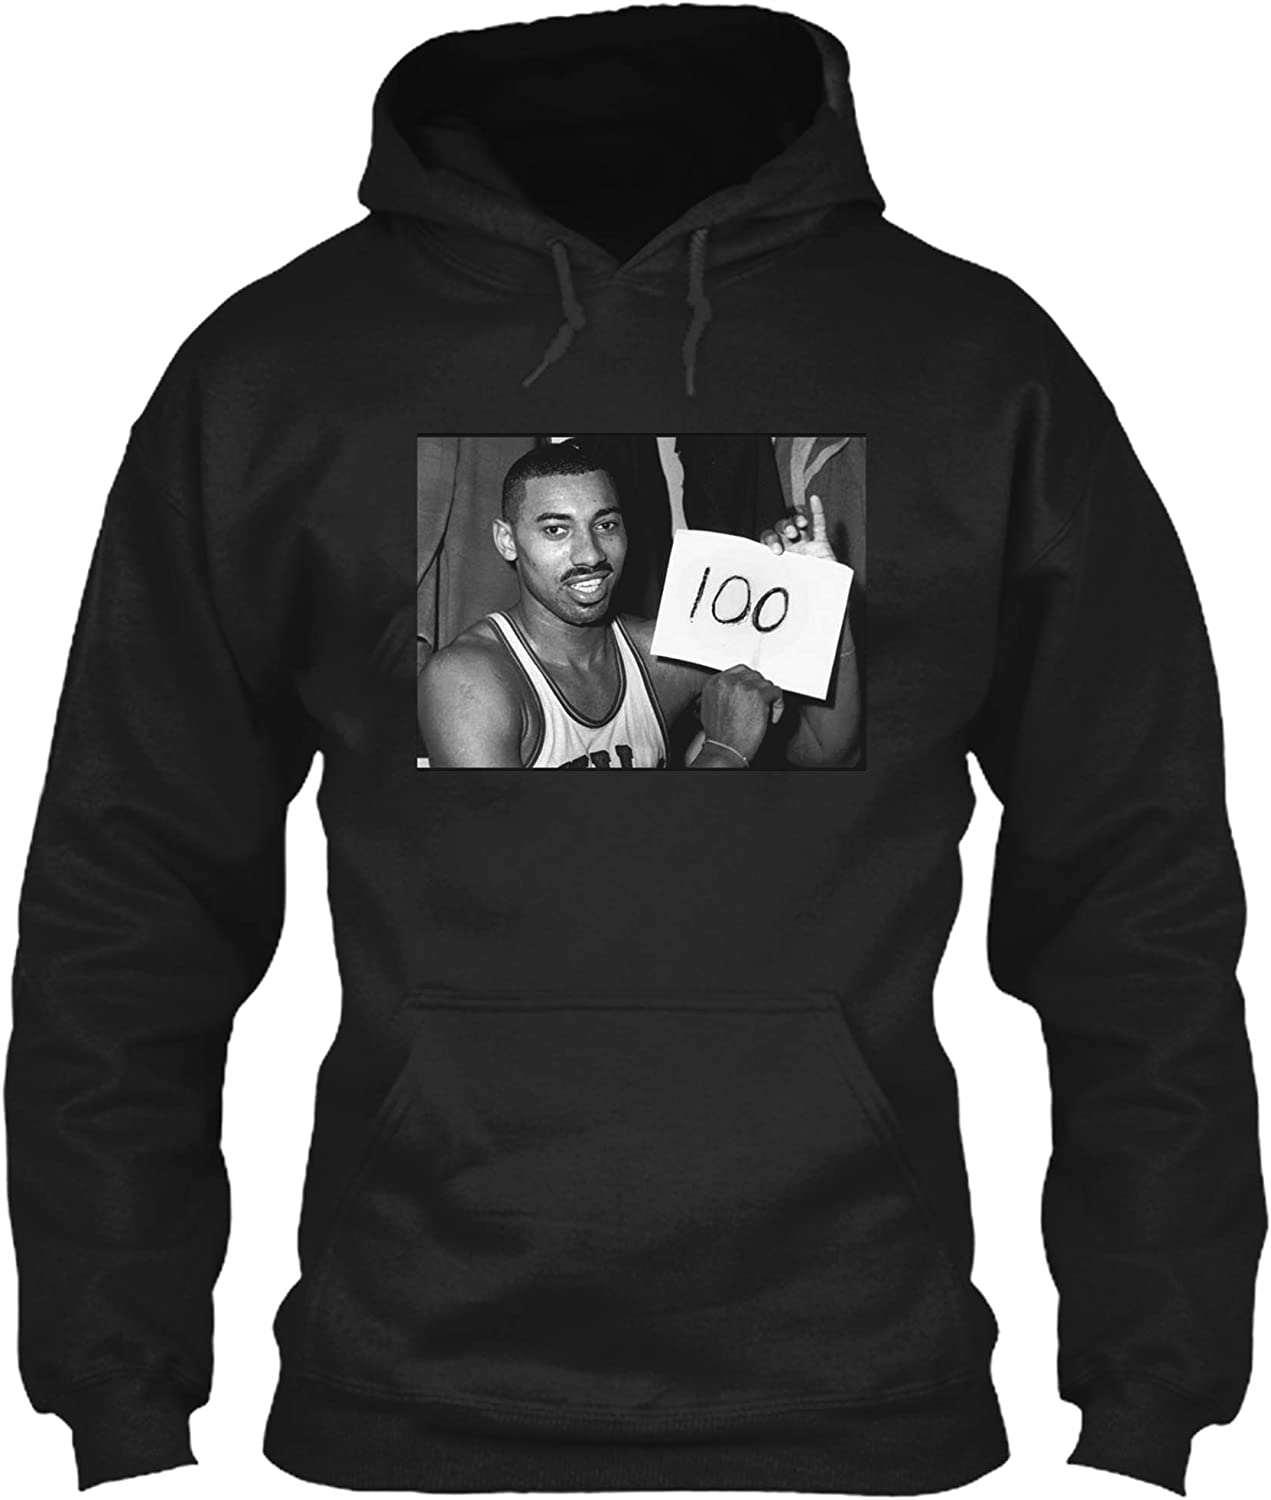 Minneapolis Mall #Wilt 100 Point Game Statline All items free shipping P American Chamberlain Basketball